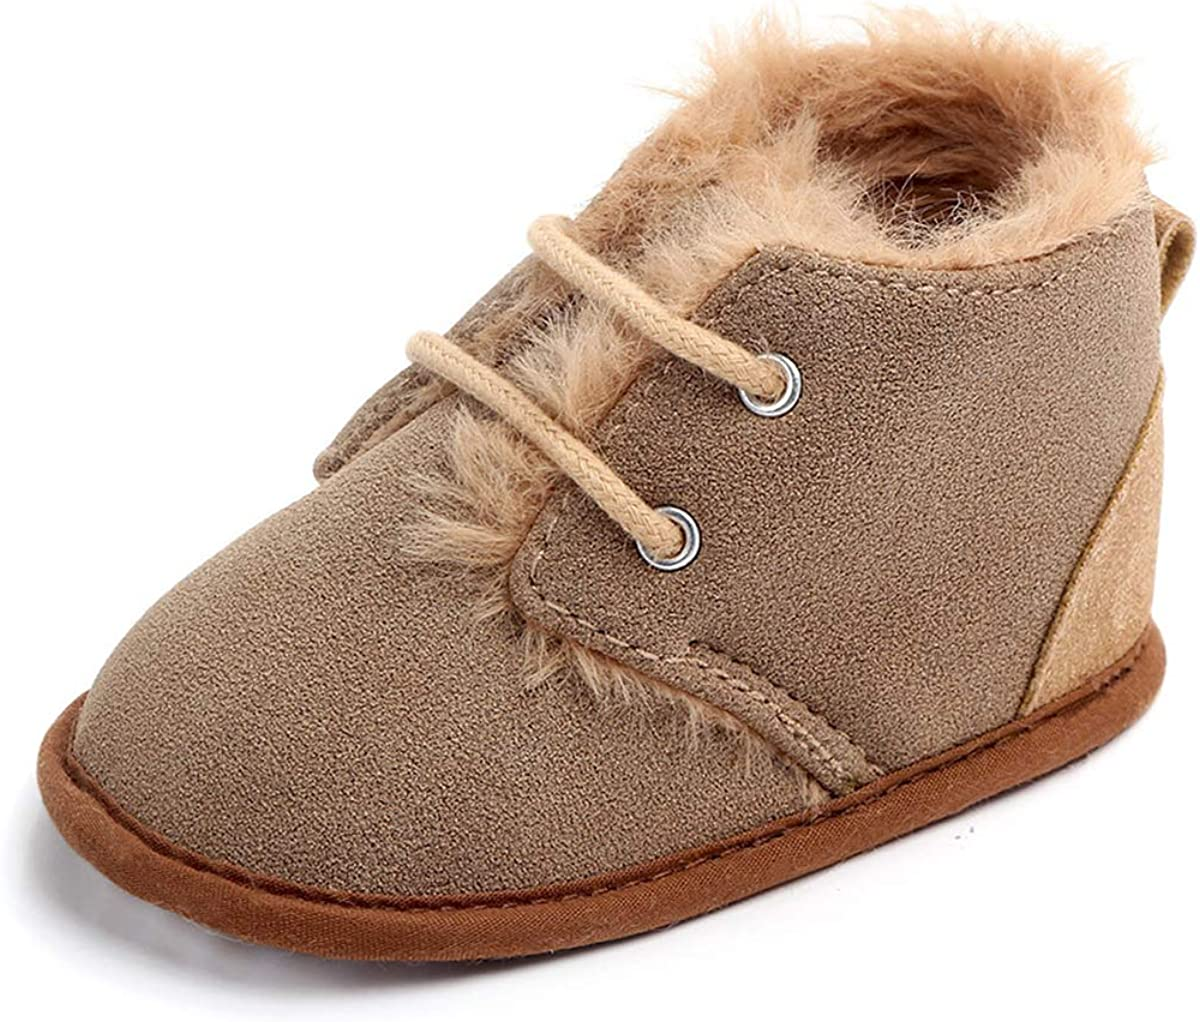 CENCIRILY Infant Baby Girls Boys Suede Boots Anti Slip Rubber Sole Toddler First Walker Warm Winter Snow Shoes